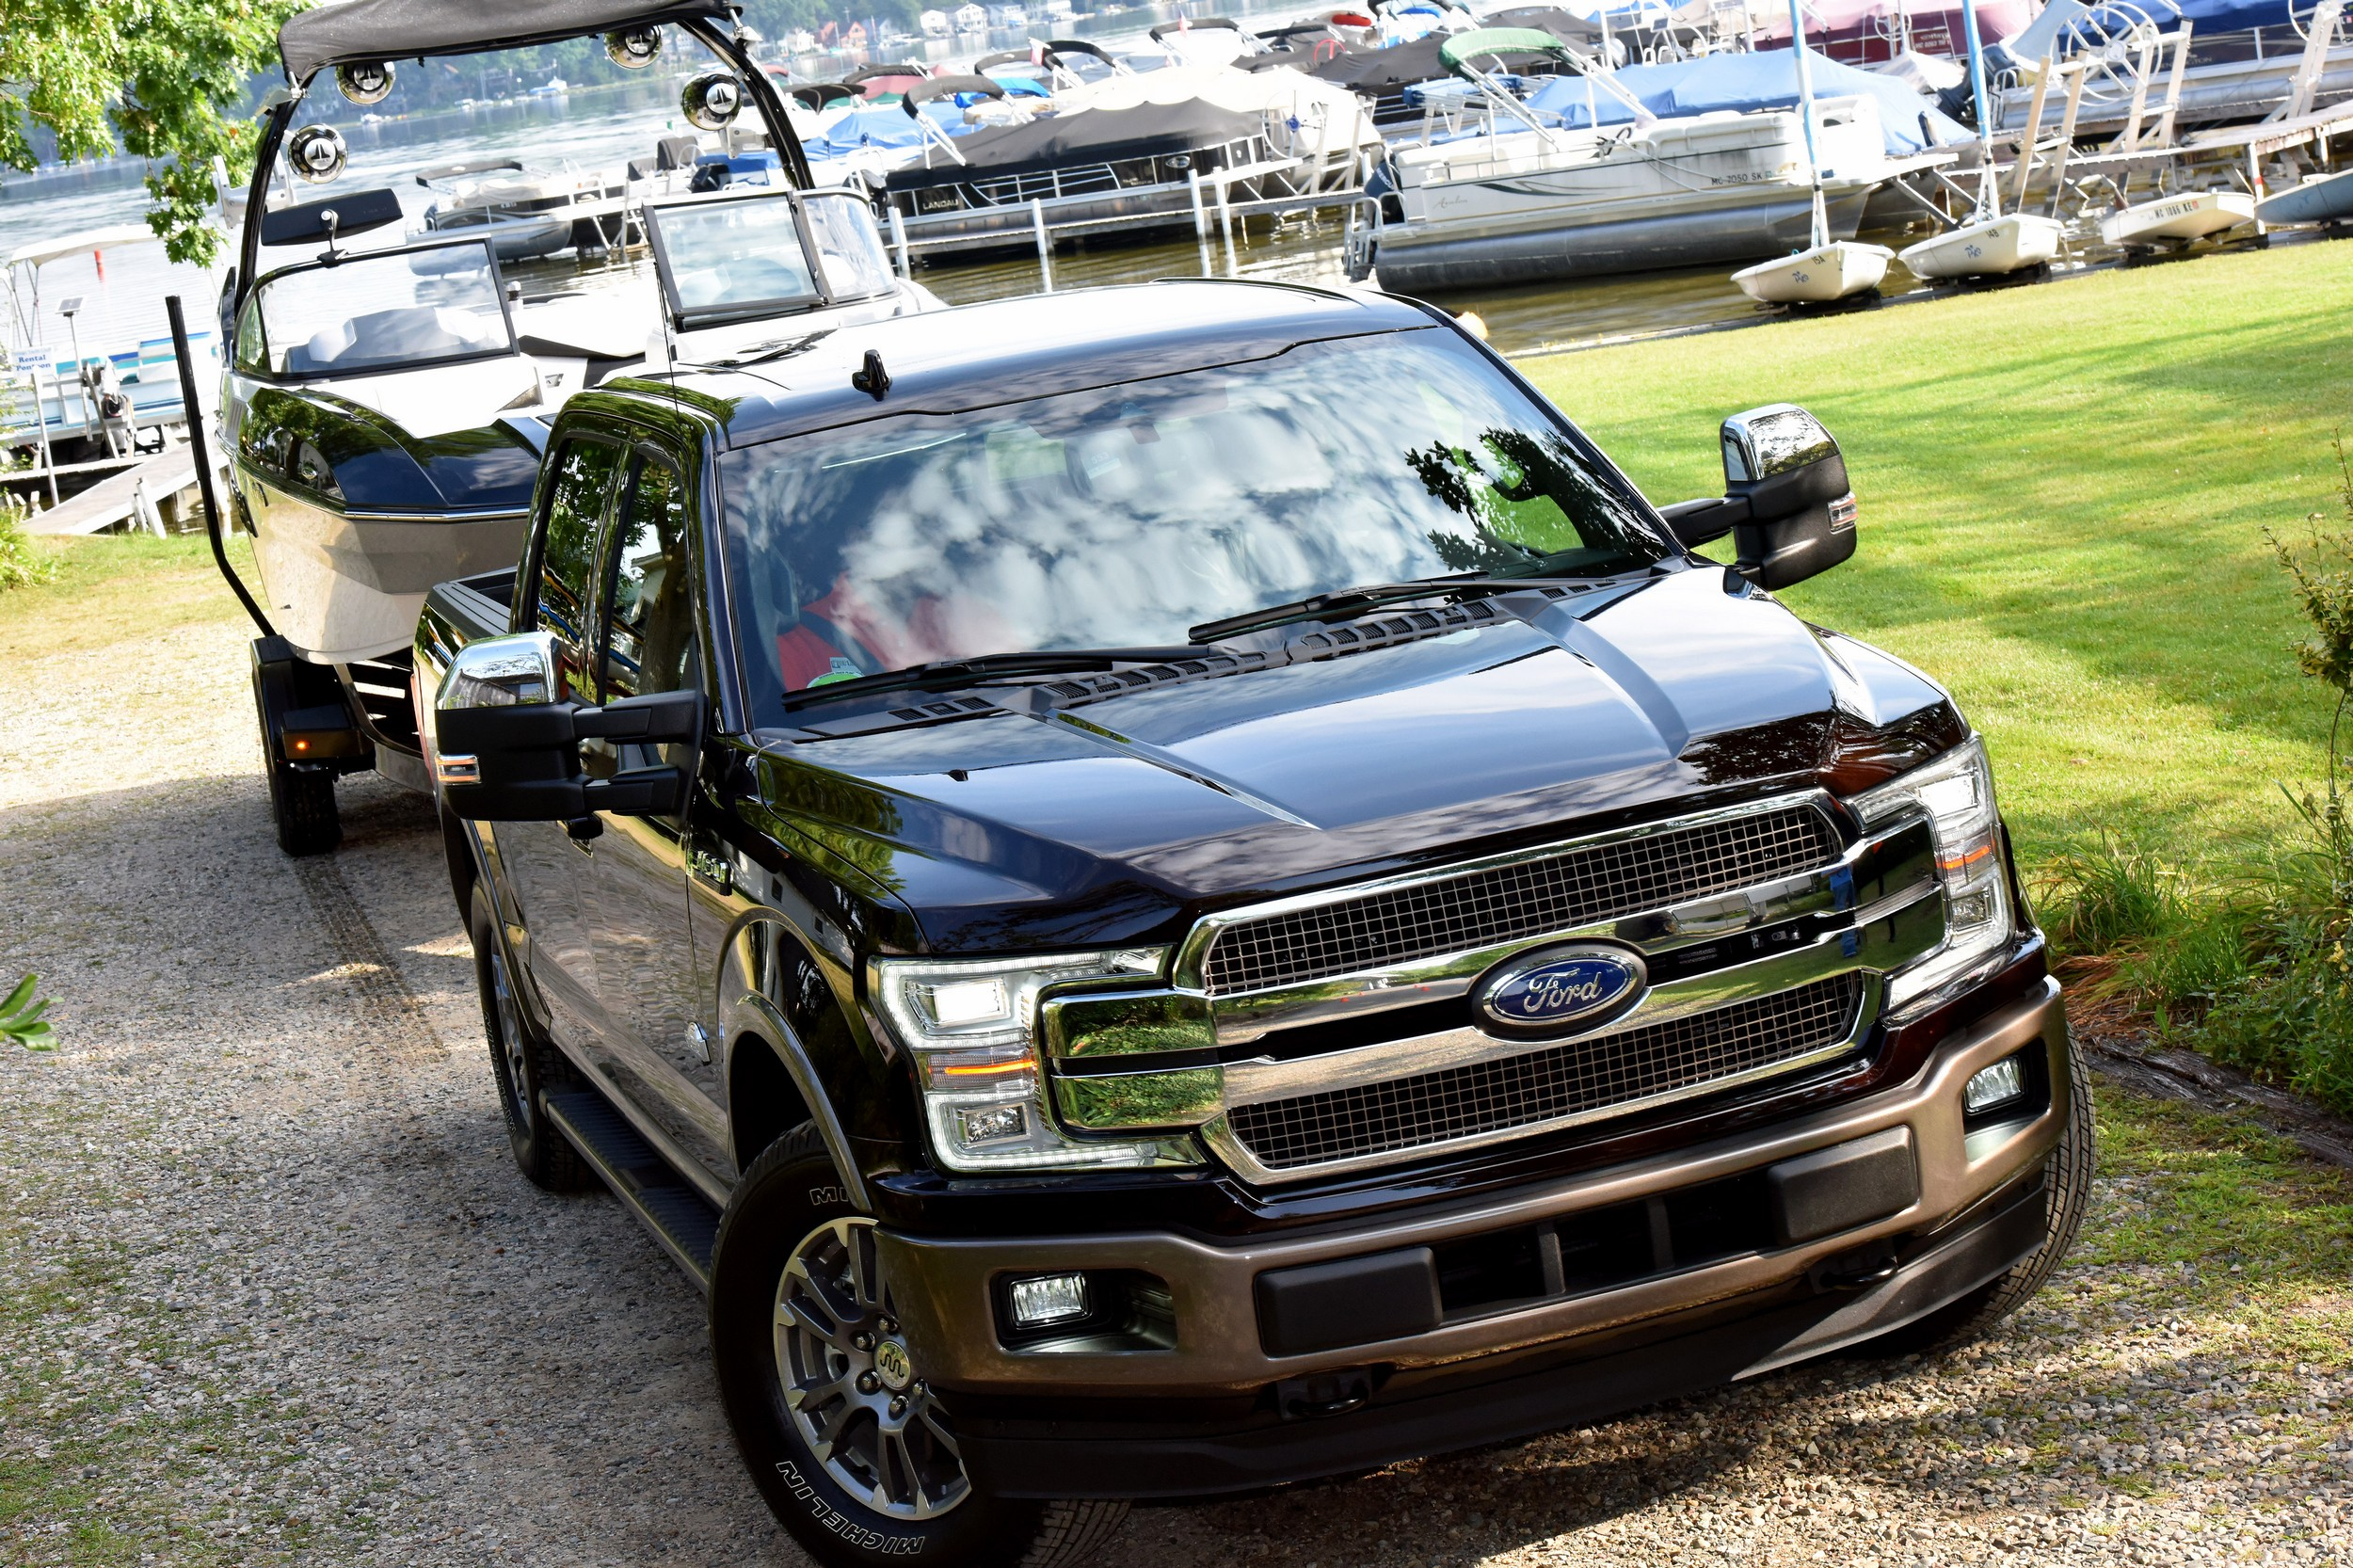 Ford F-150 towing boat